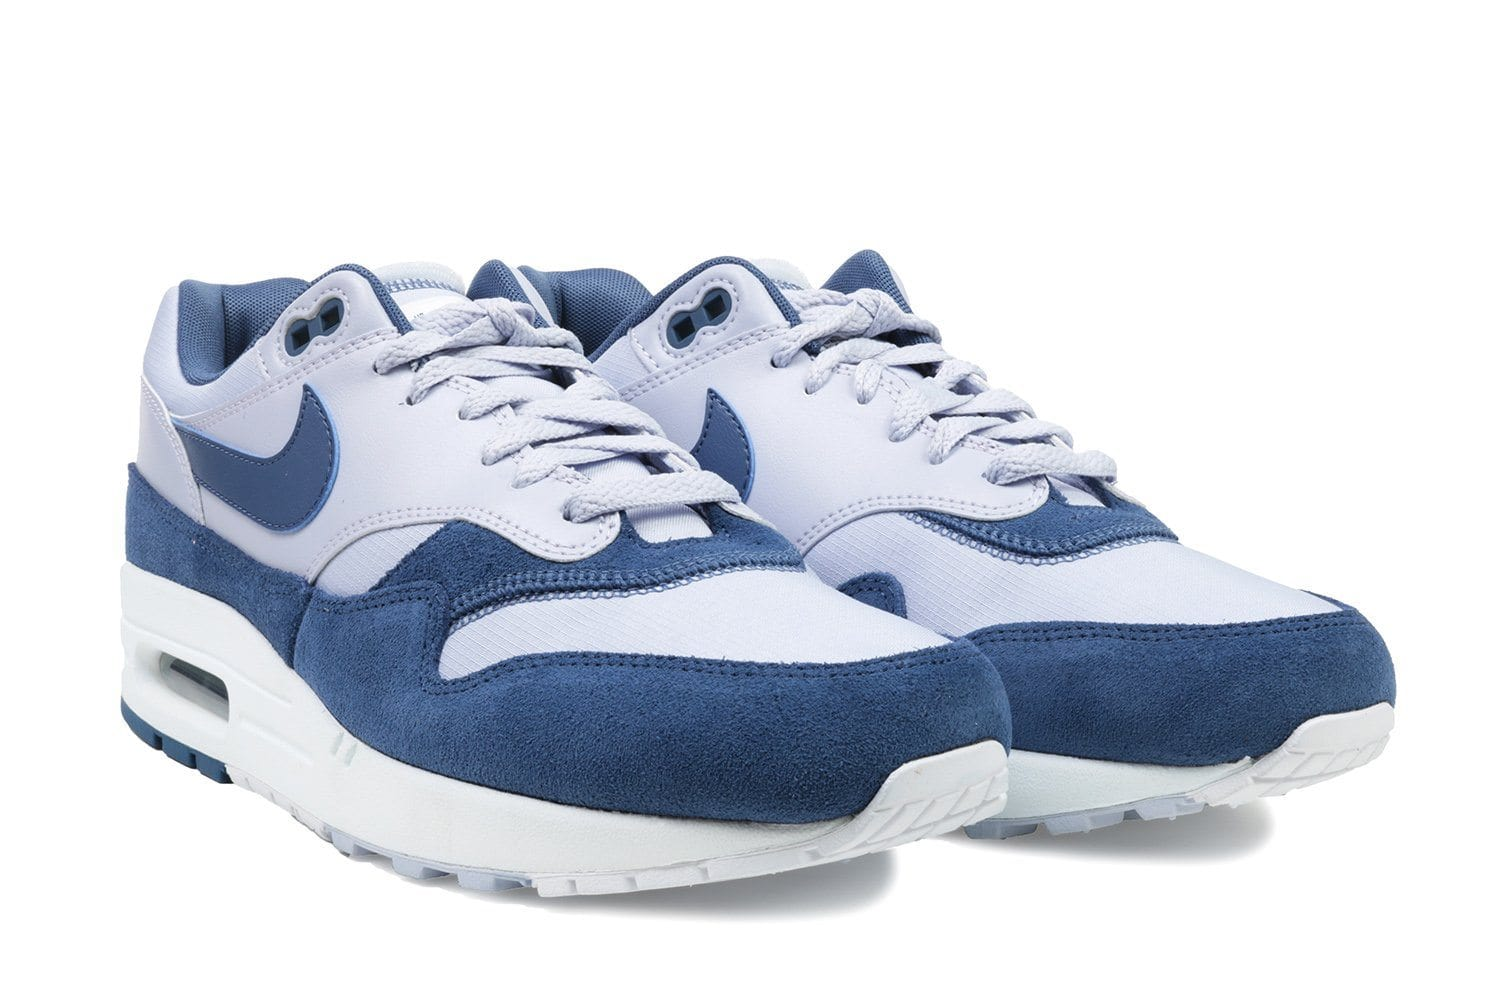 low cost sale usa online official store AIR MAX 1 - AH8145-016